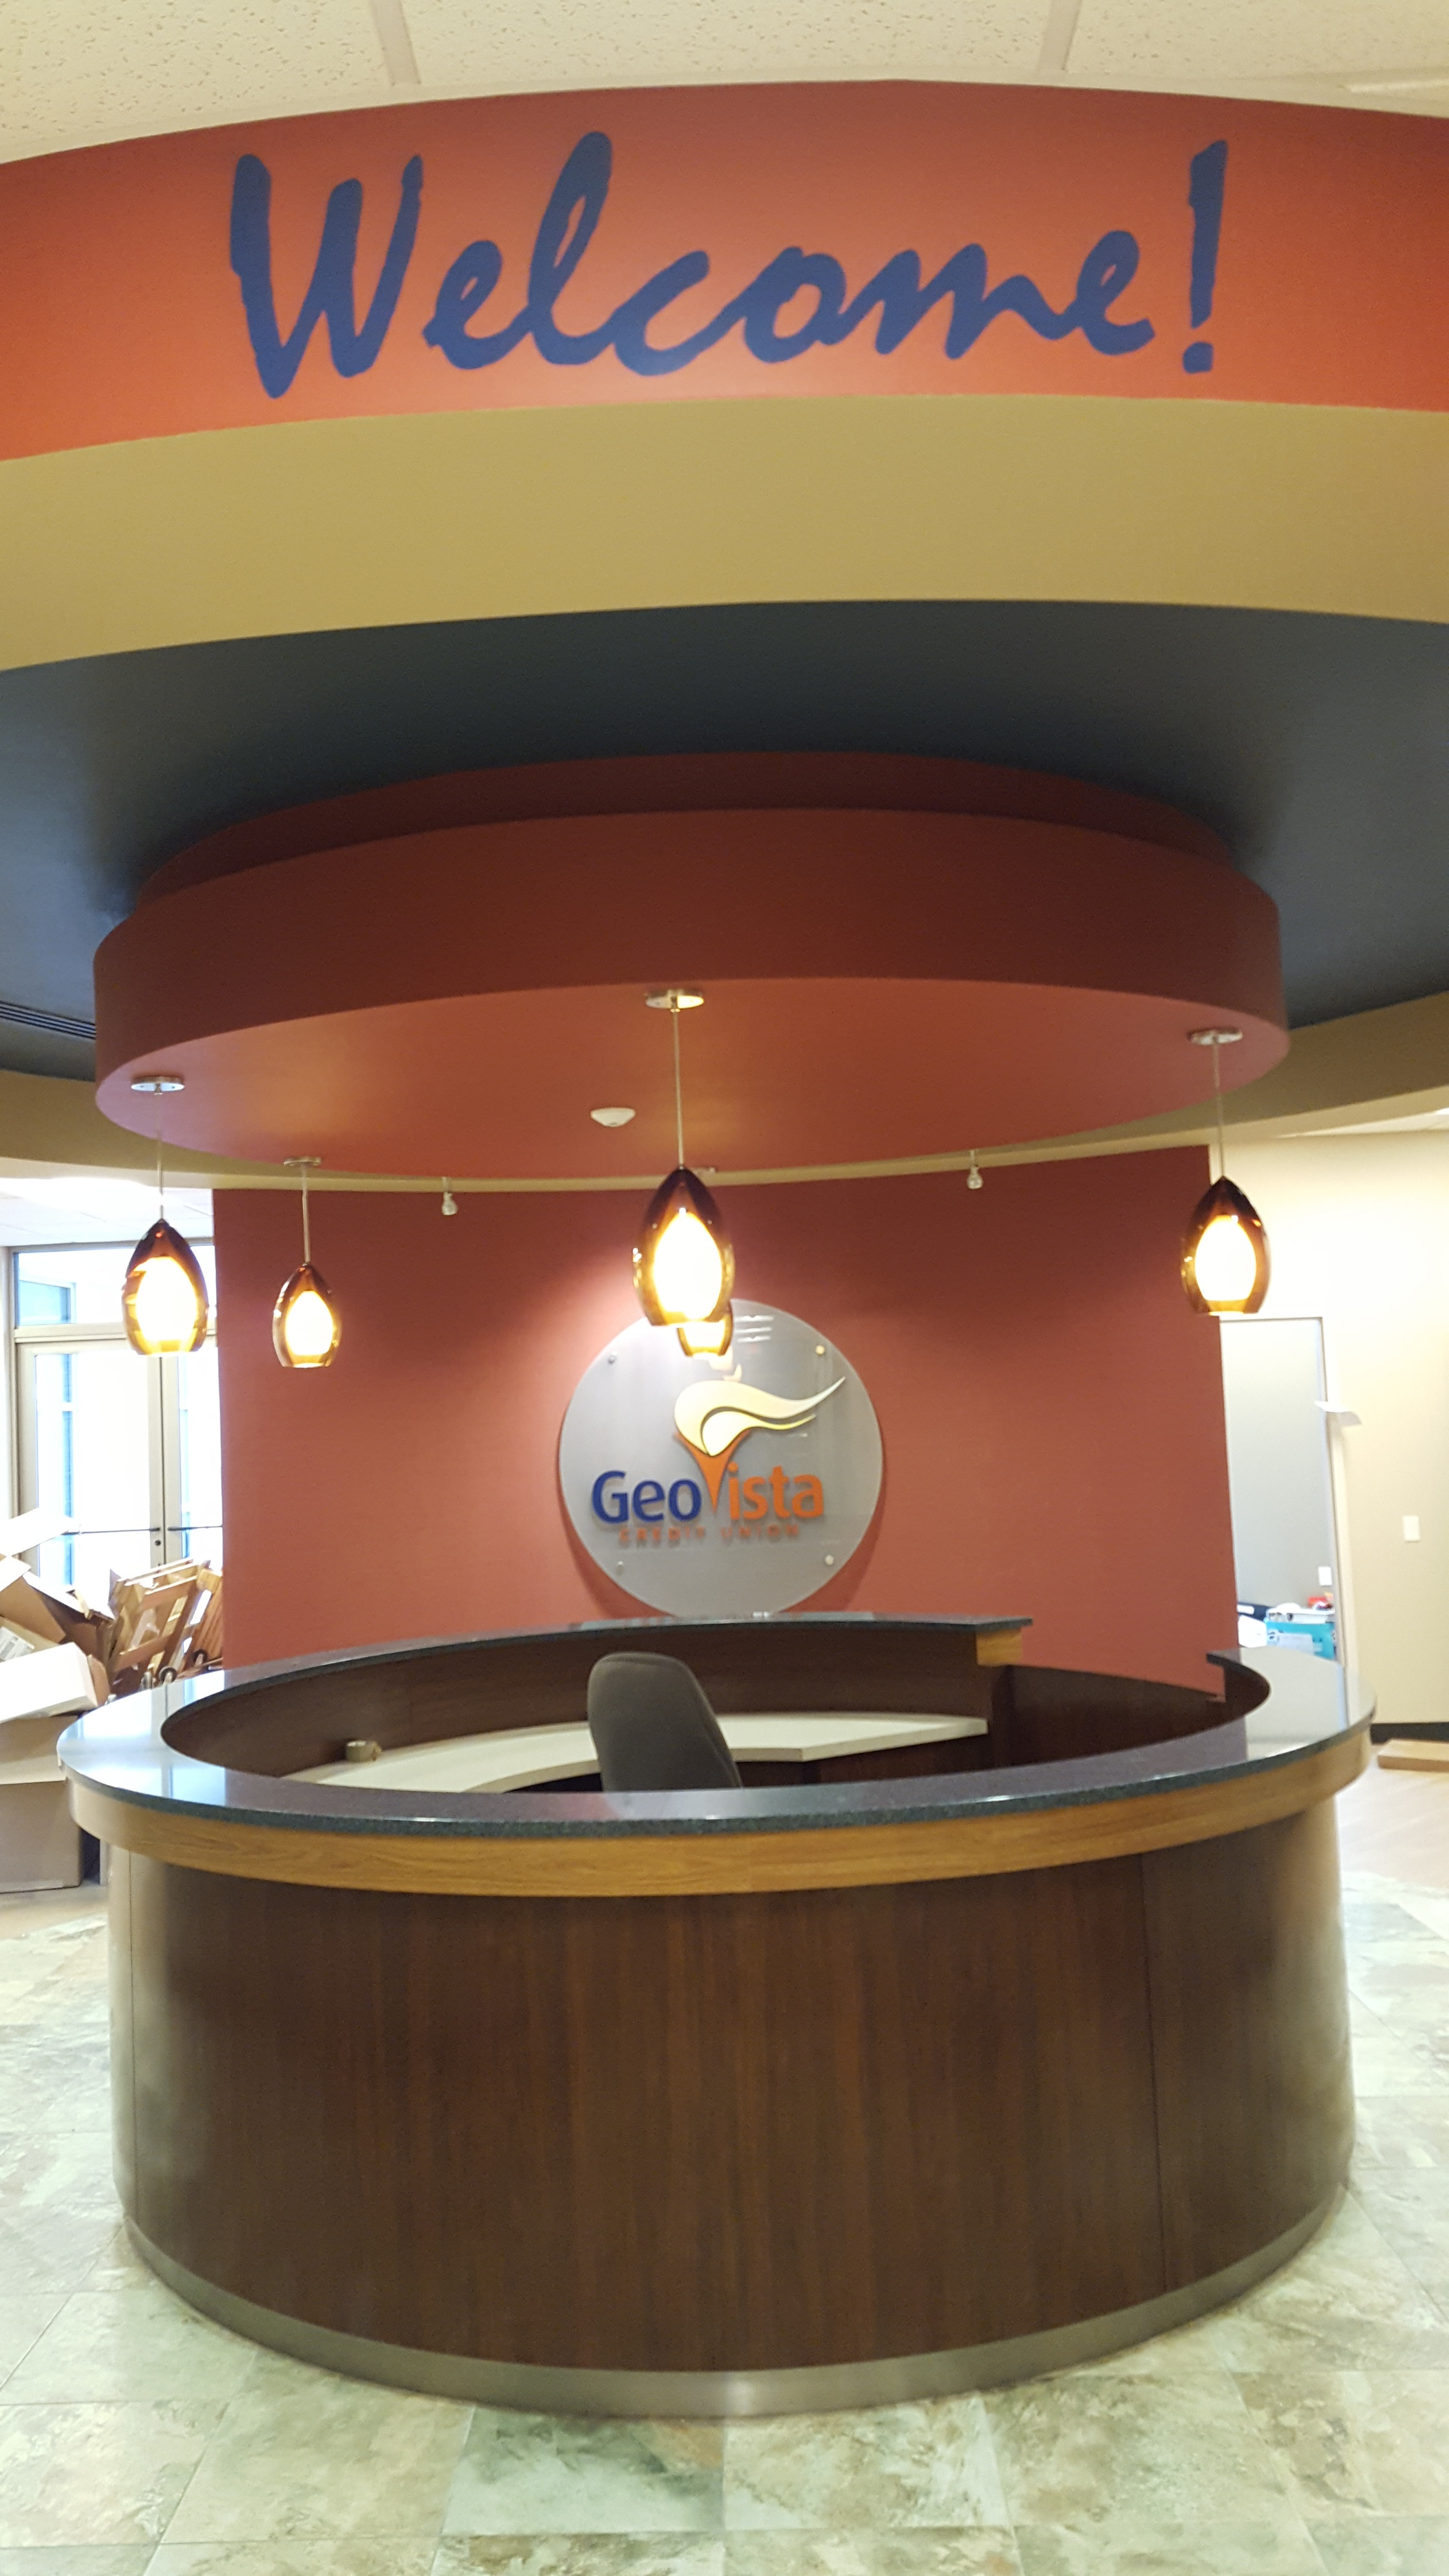 GeoVista Glass and Vinyl by Glass Graphics of Atlanta.